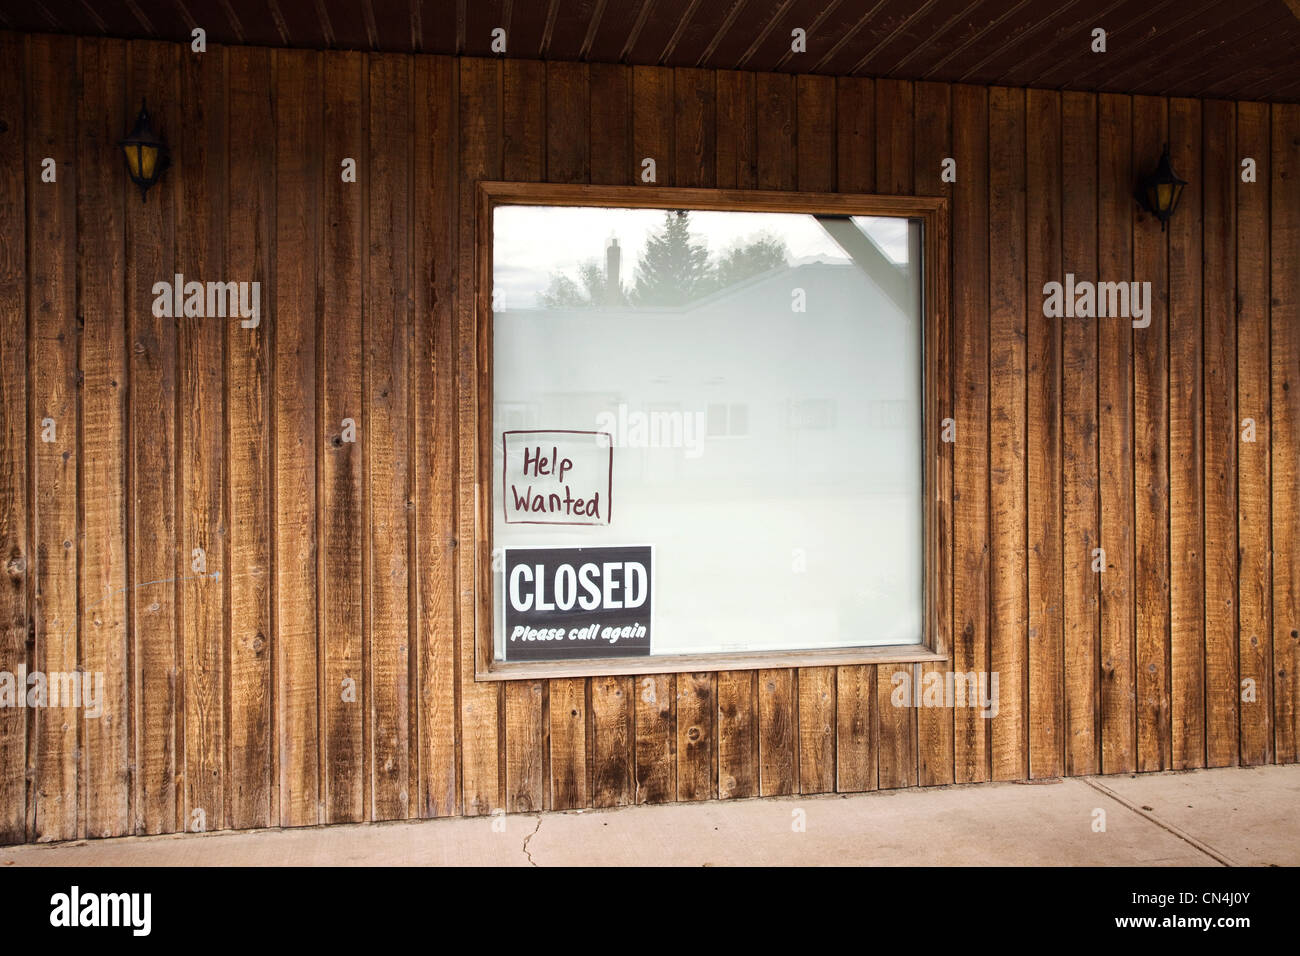 Signs in shop window - Stock Image